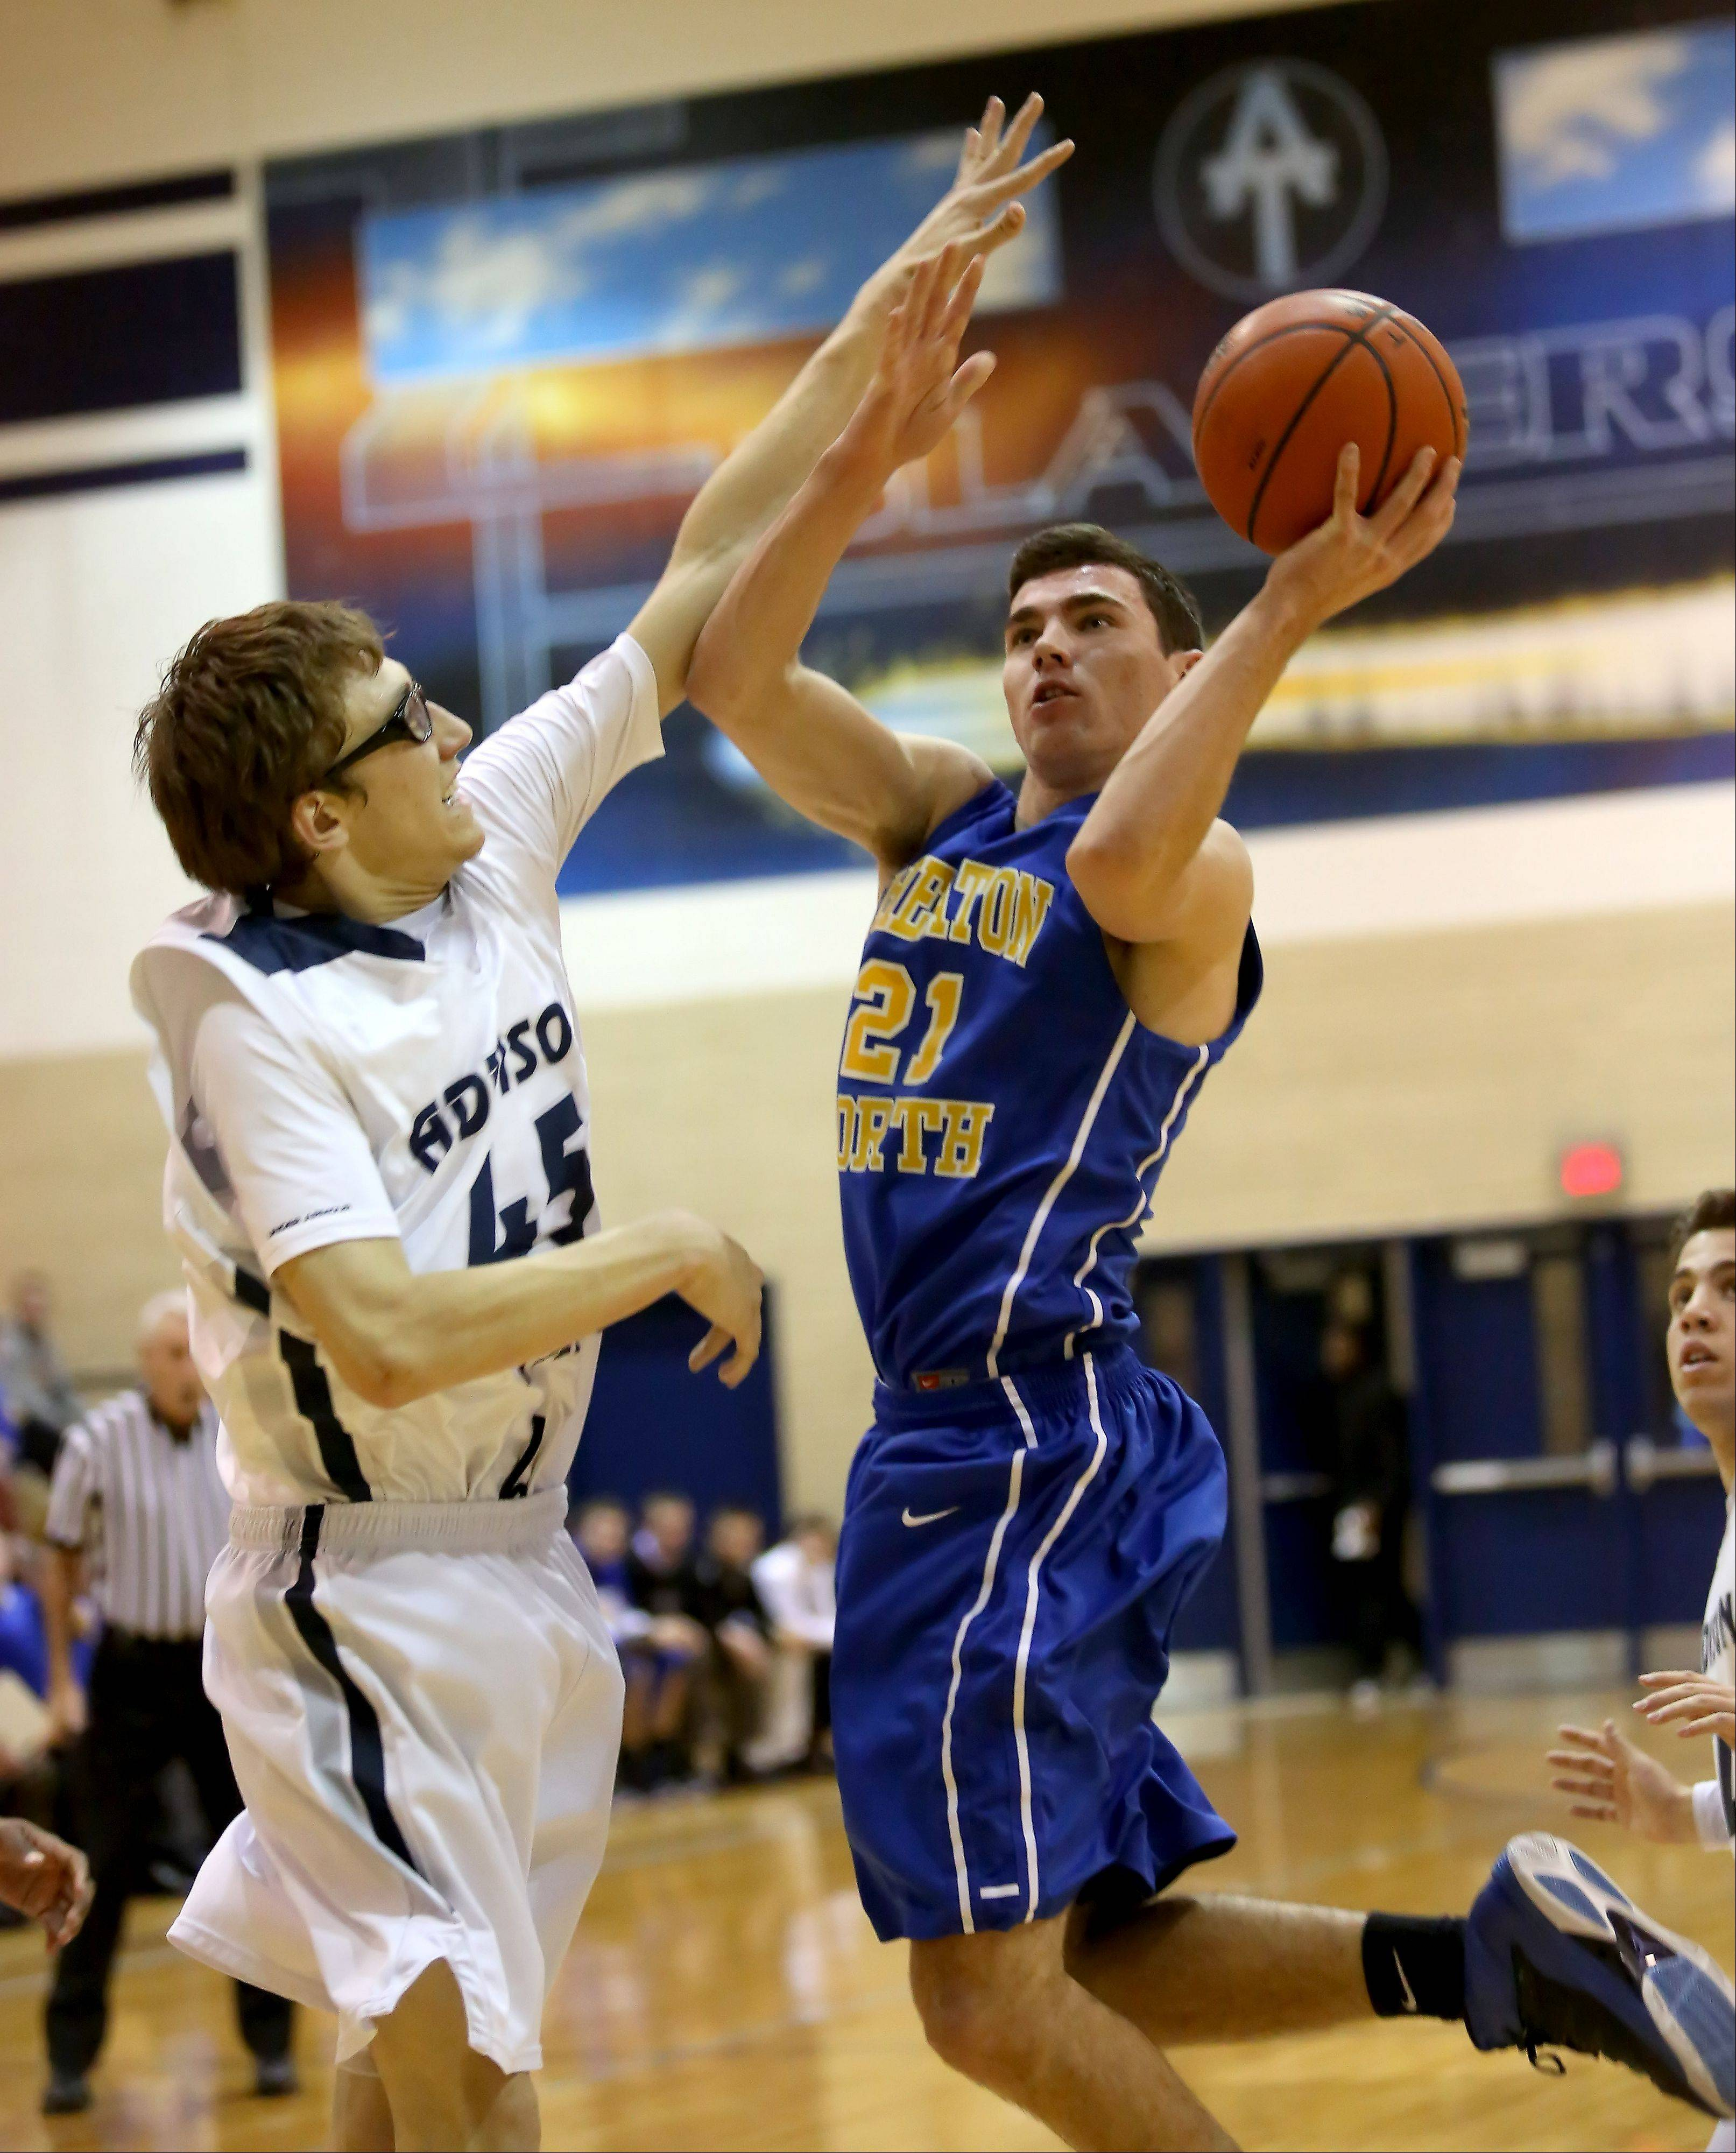 Addison Trail's Joe Villasenor defends as Andrew Slivinski of Wheaton North attacks the basket on Monday in Addison.